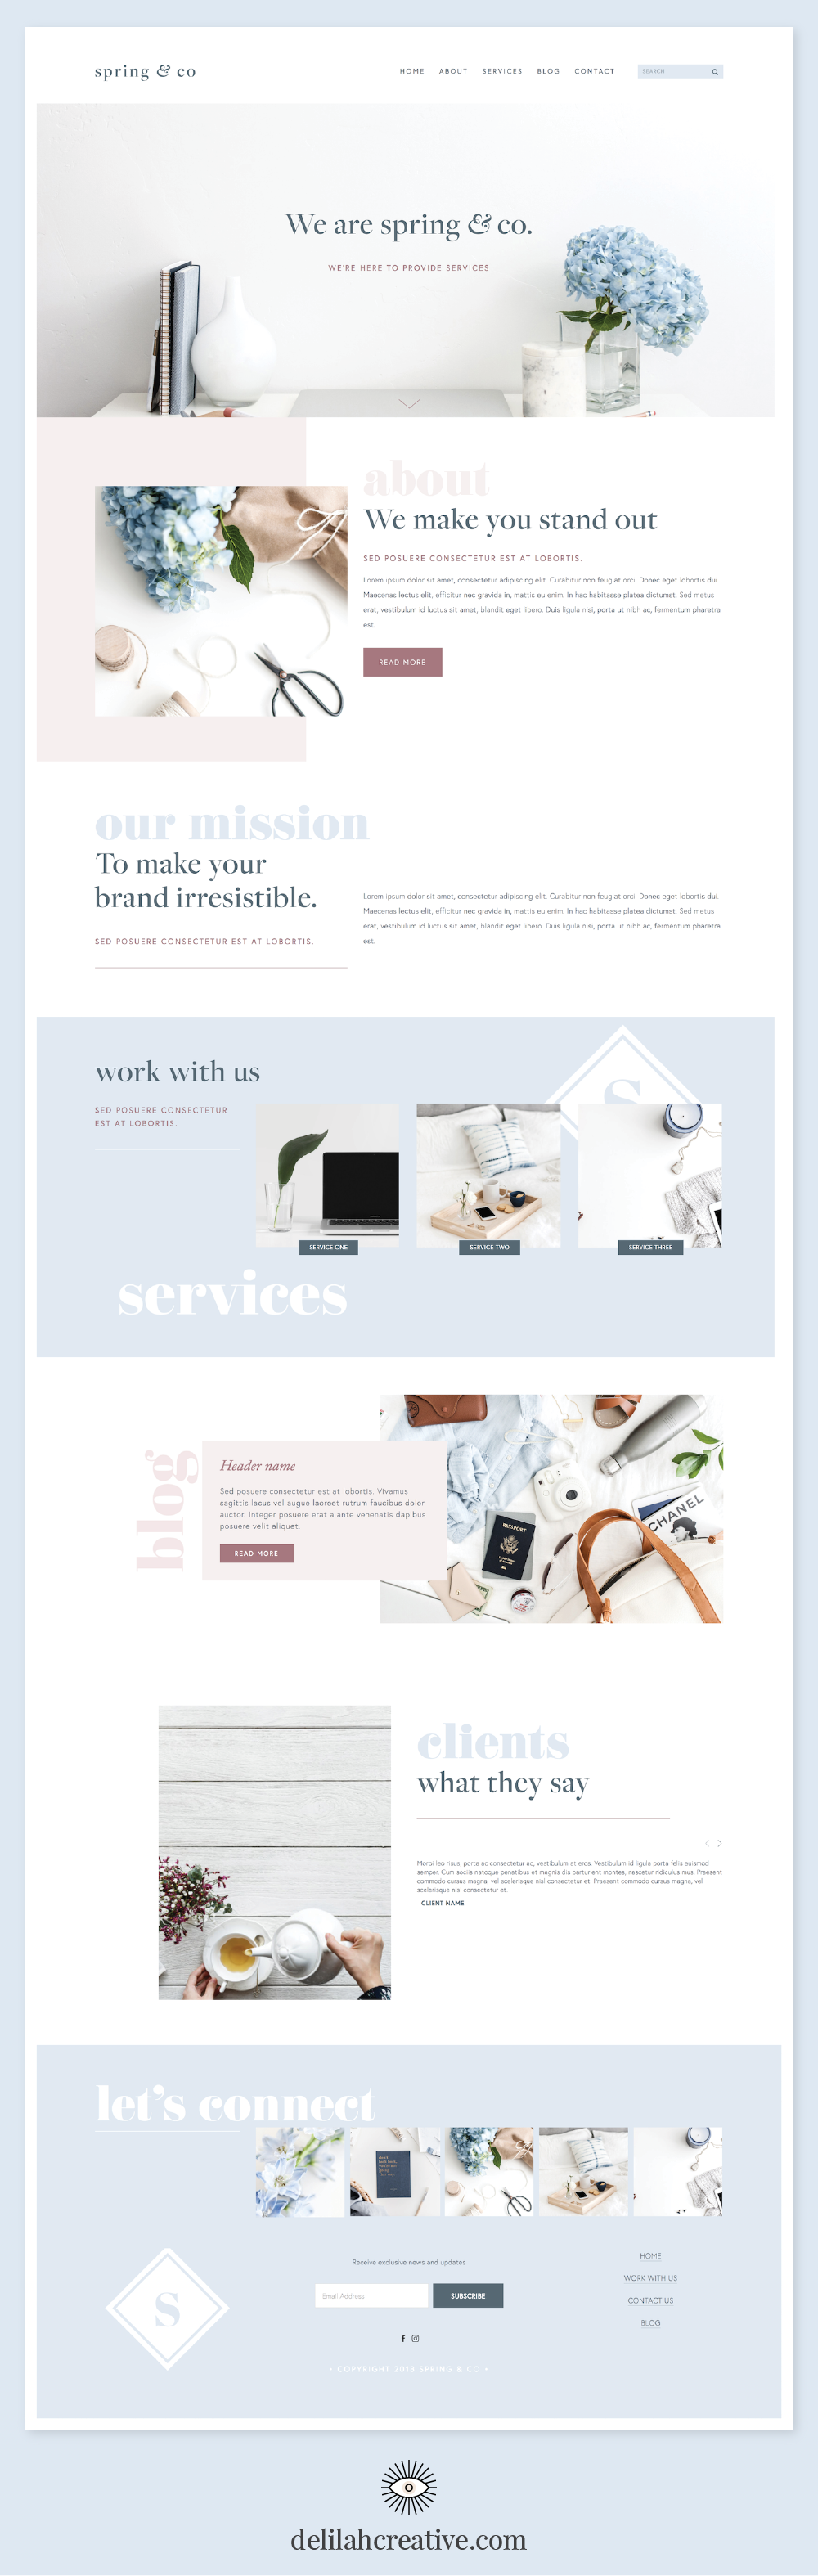 squarespace-template-service-business-spring-and-co-delilah-creative